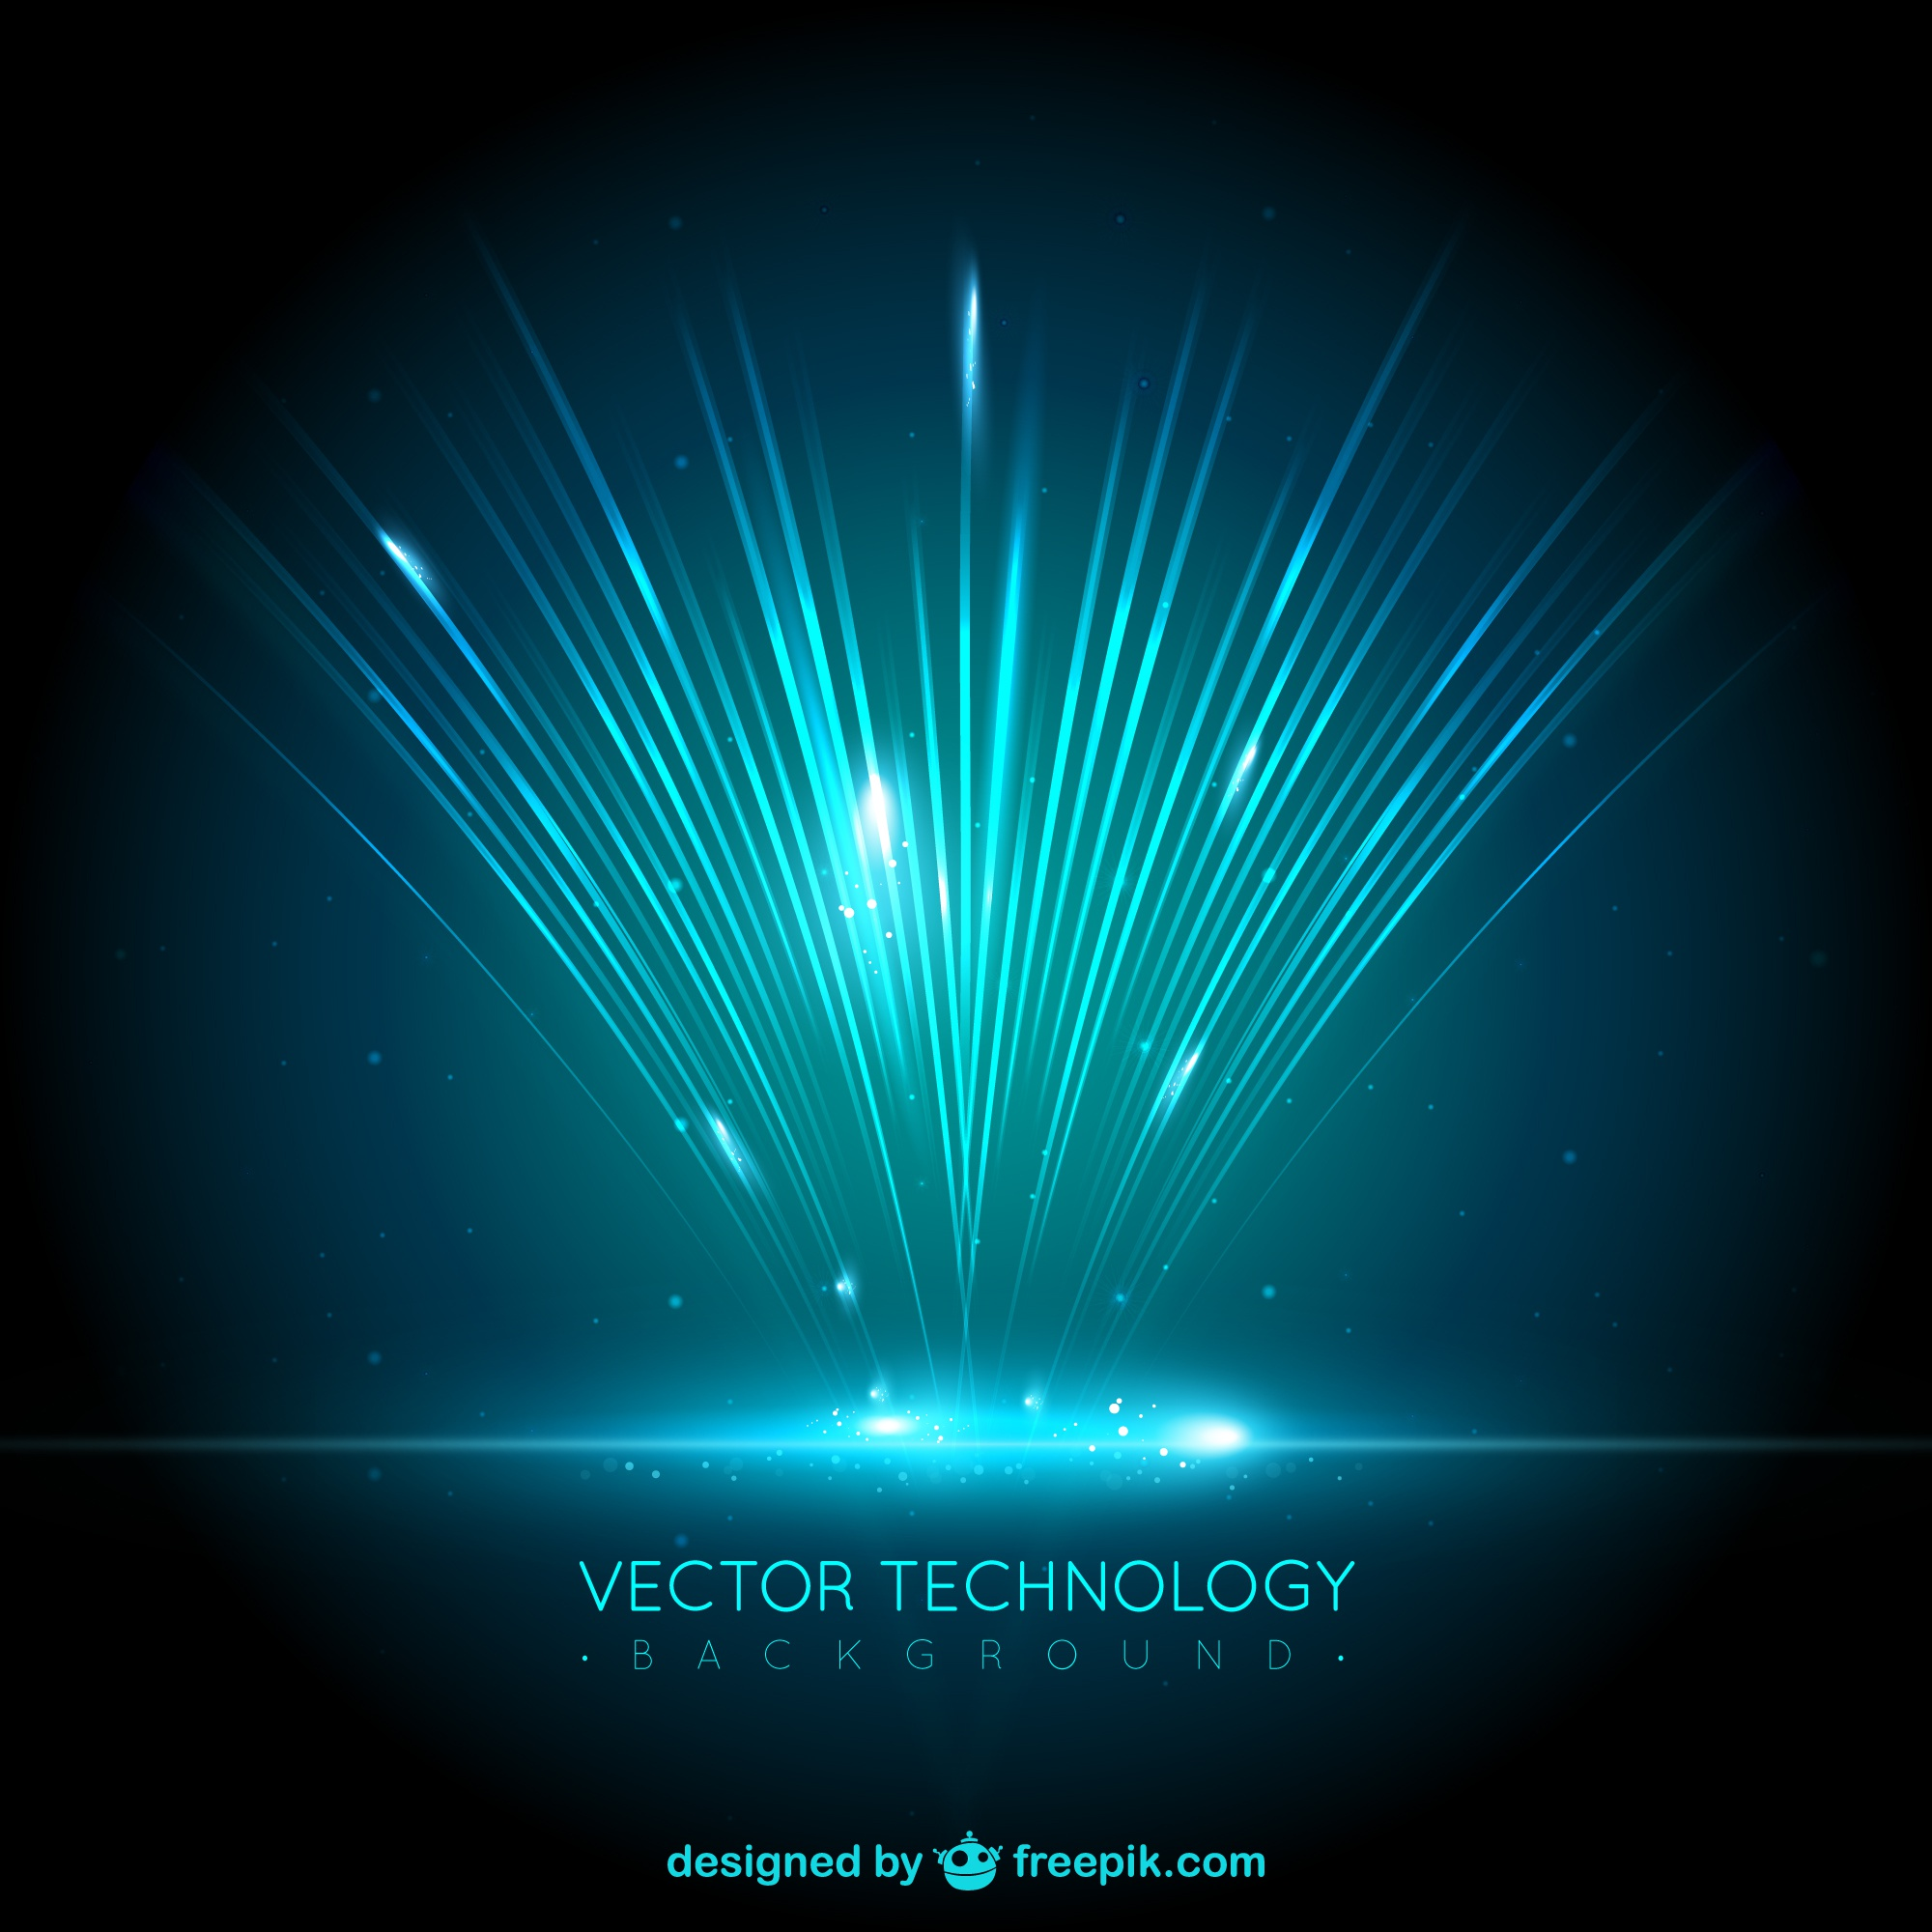 Abstract technology background design